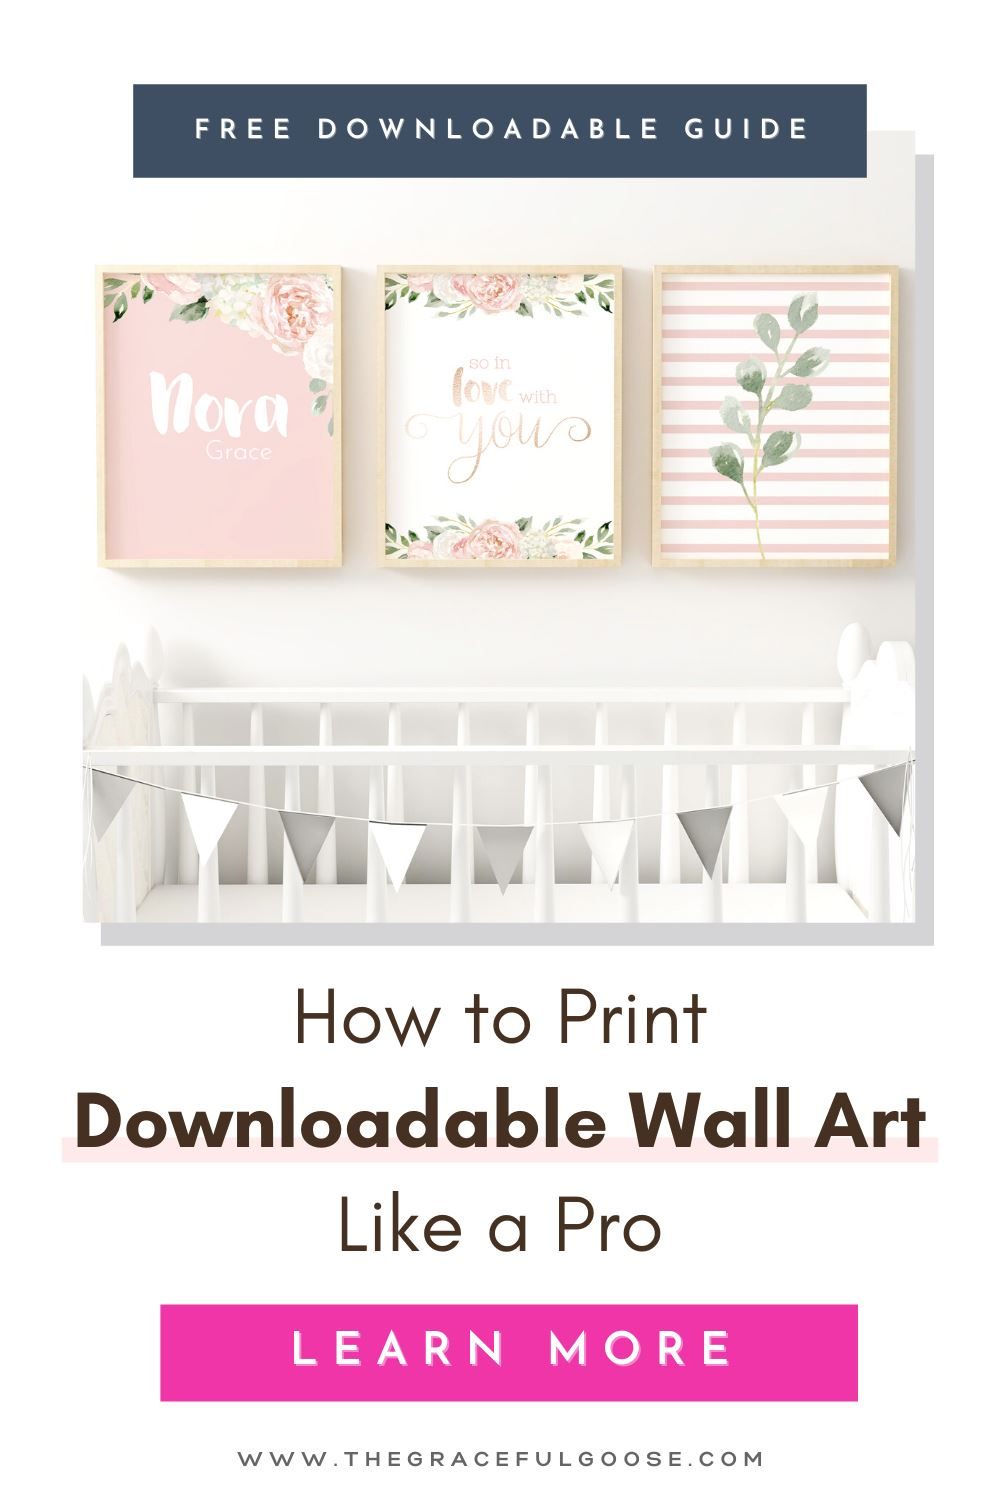 Tips to Help You Print Wall Art Like a Pro (At Home or Online)